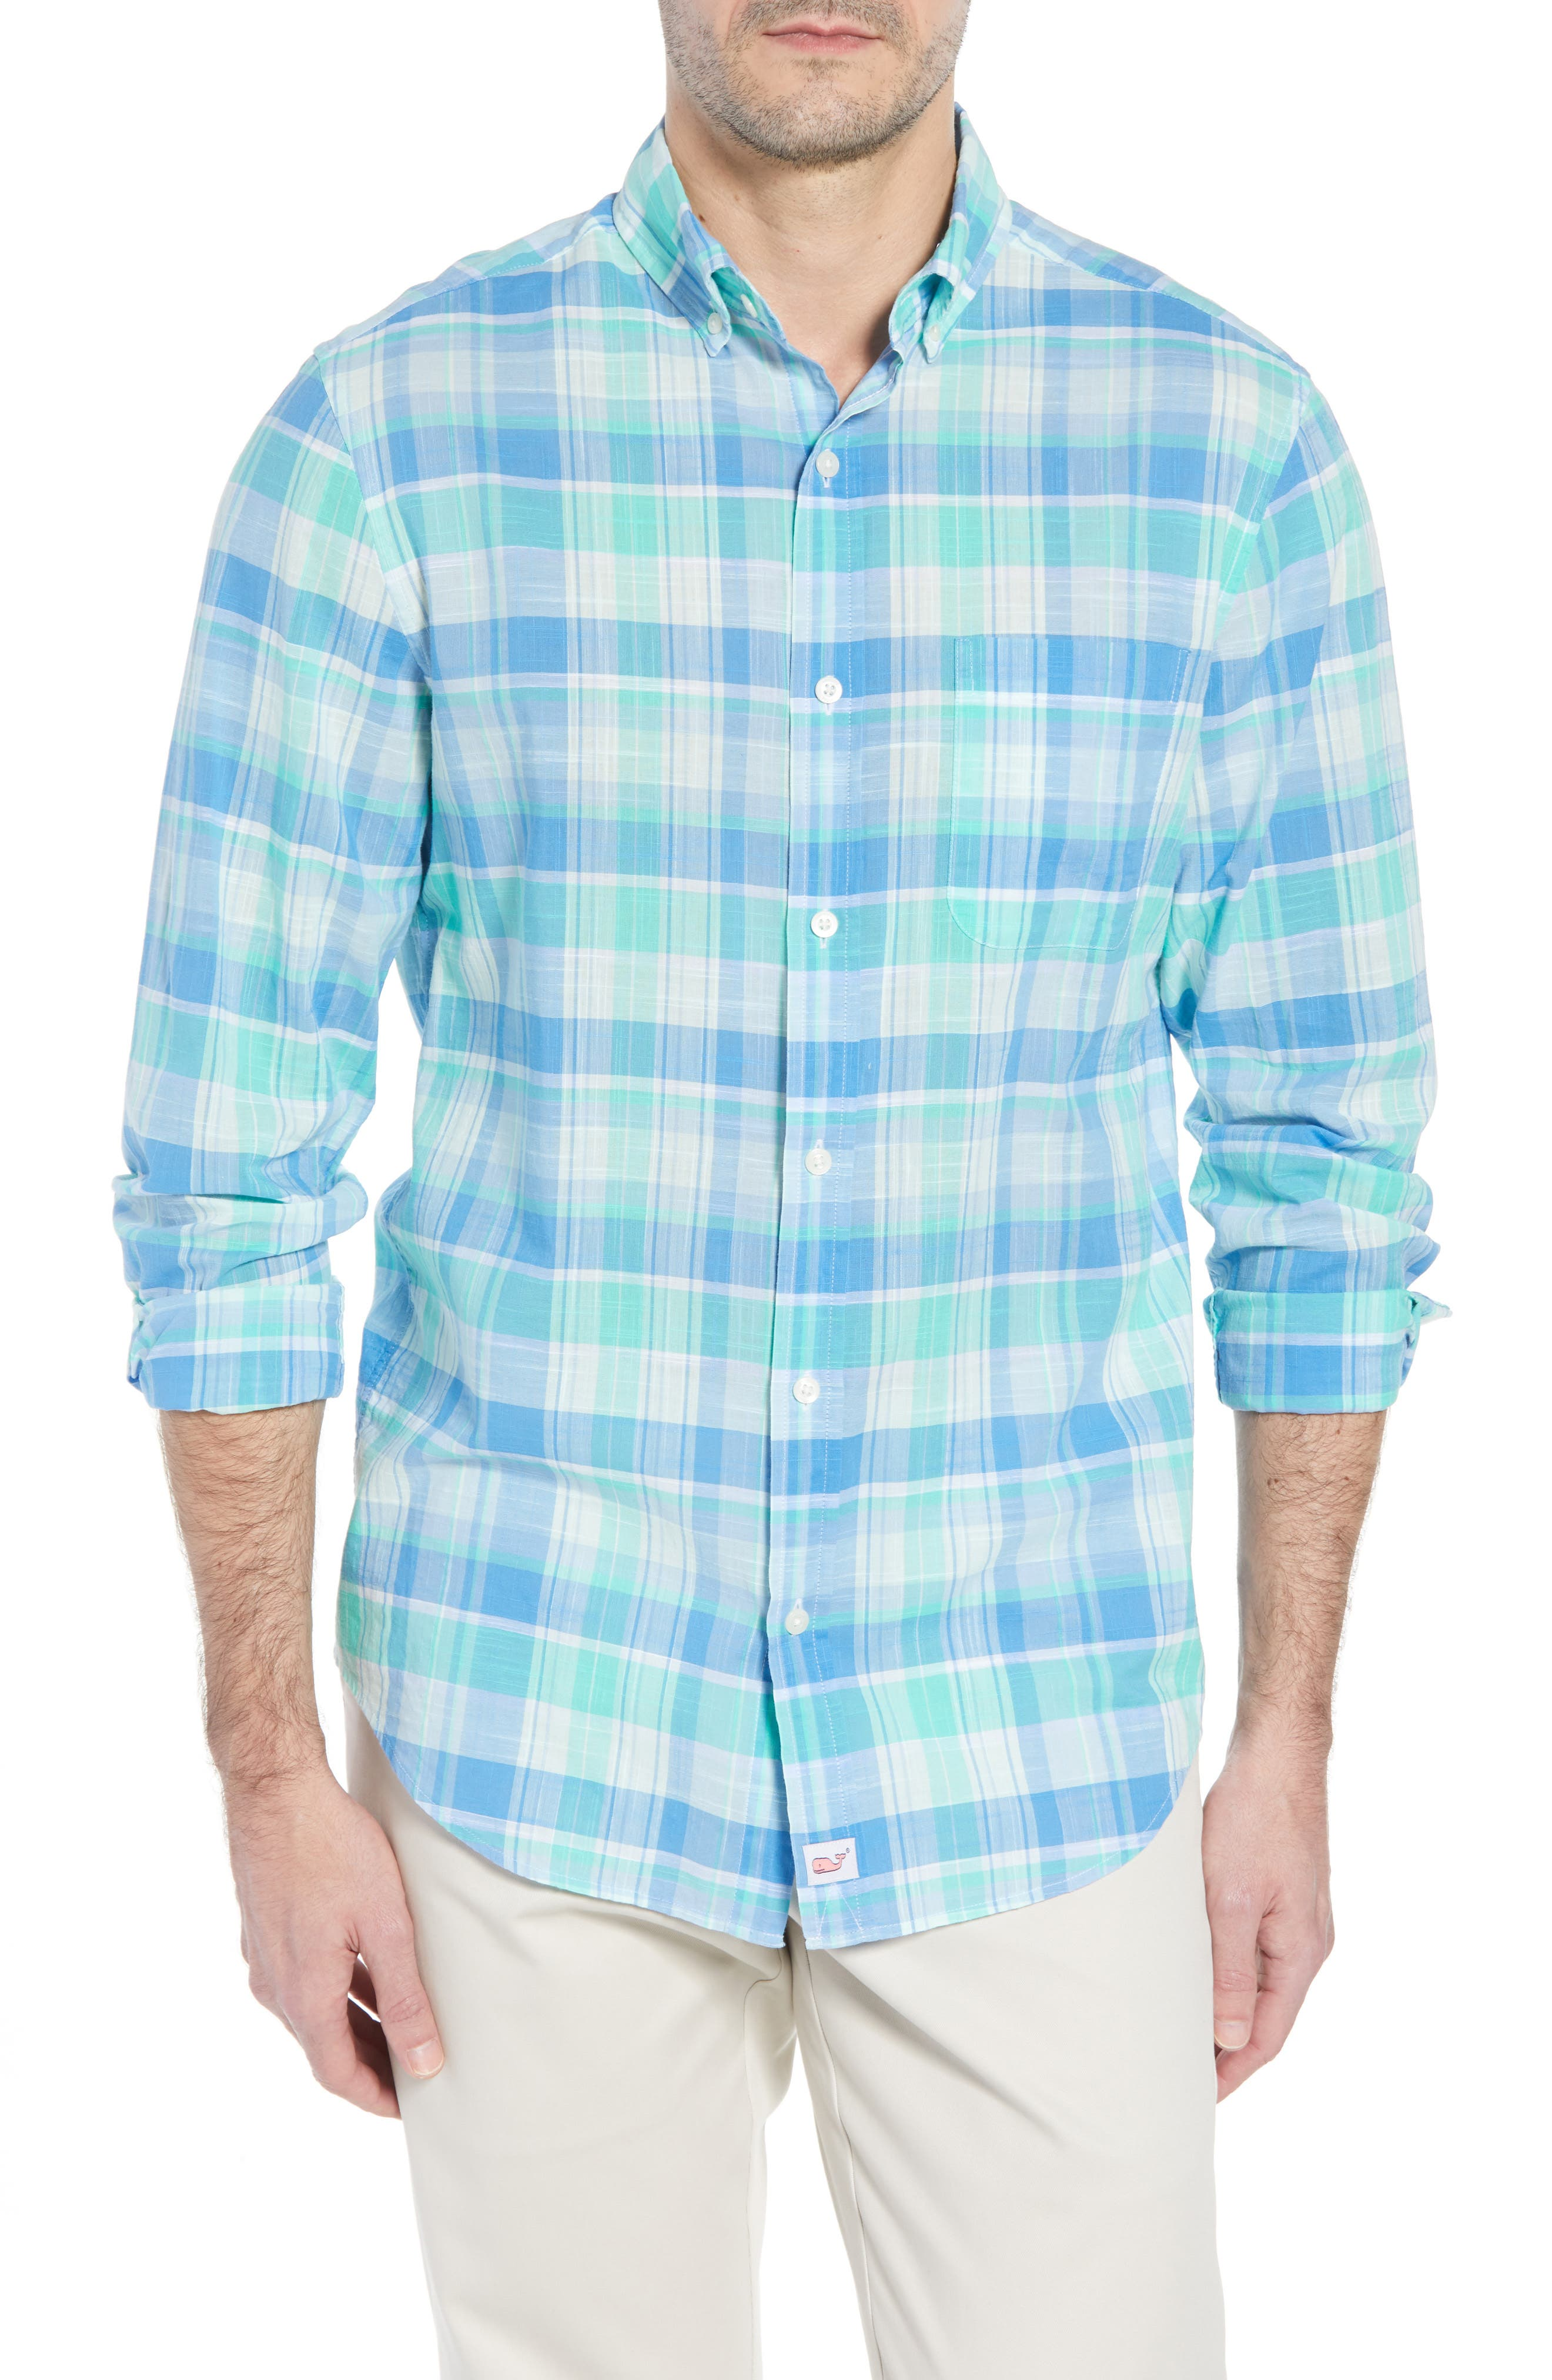 Homer Pond Murray Classic Fit Plaid Sport Shirt,                         Main,                         color, Antigua Green